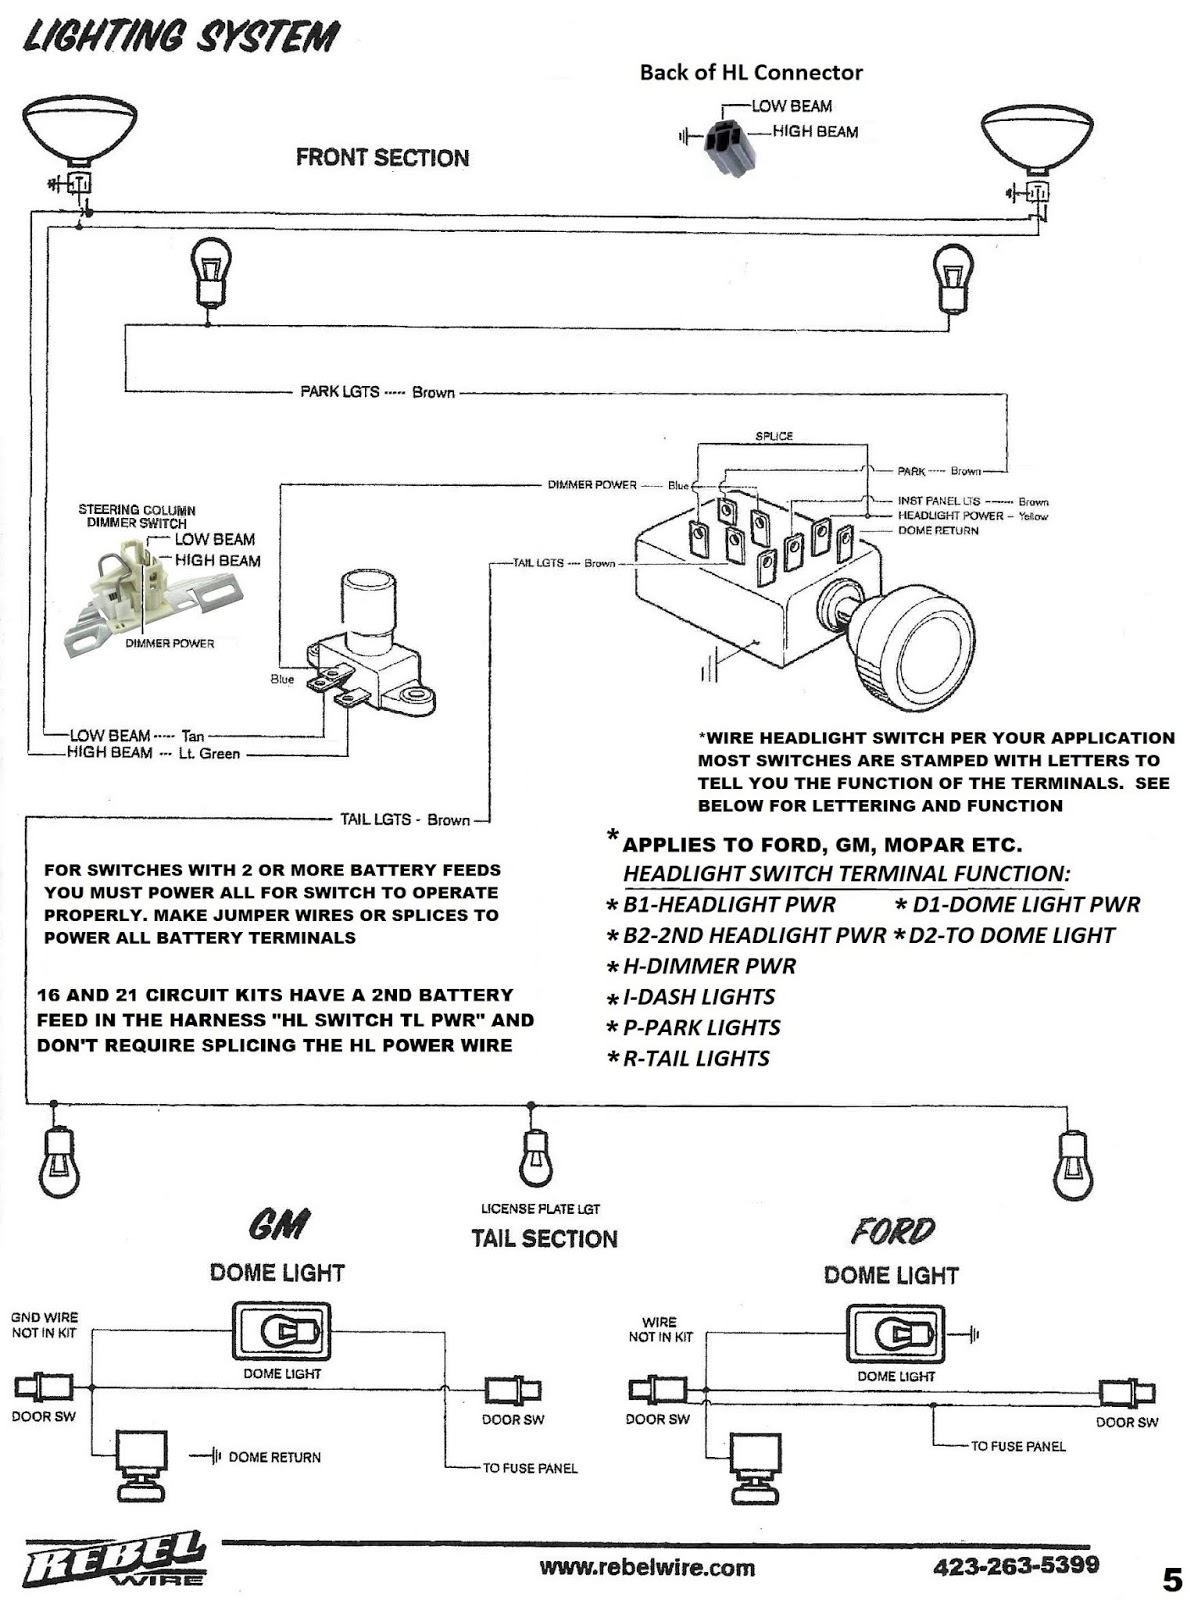 REBEL WIRE LIGHTING SYSTEM WIRING DIAGRAM